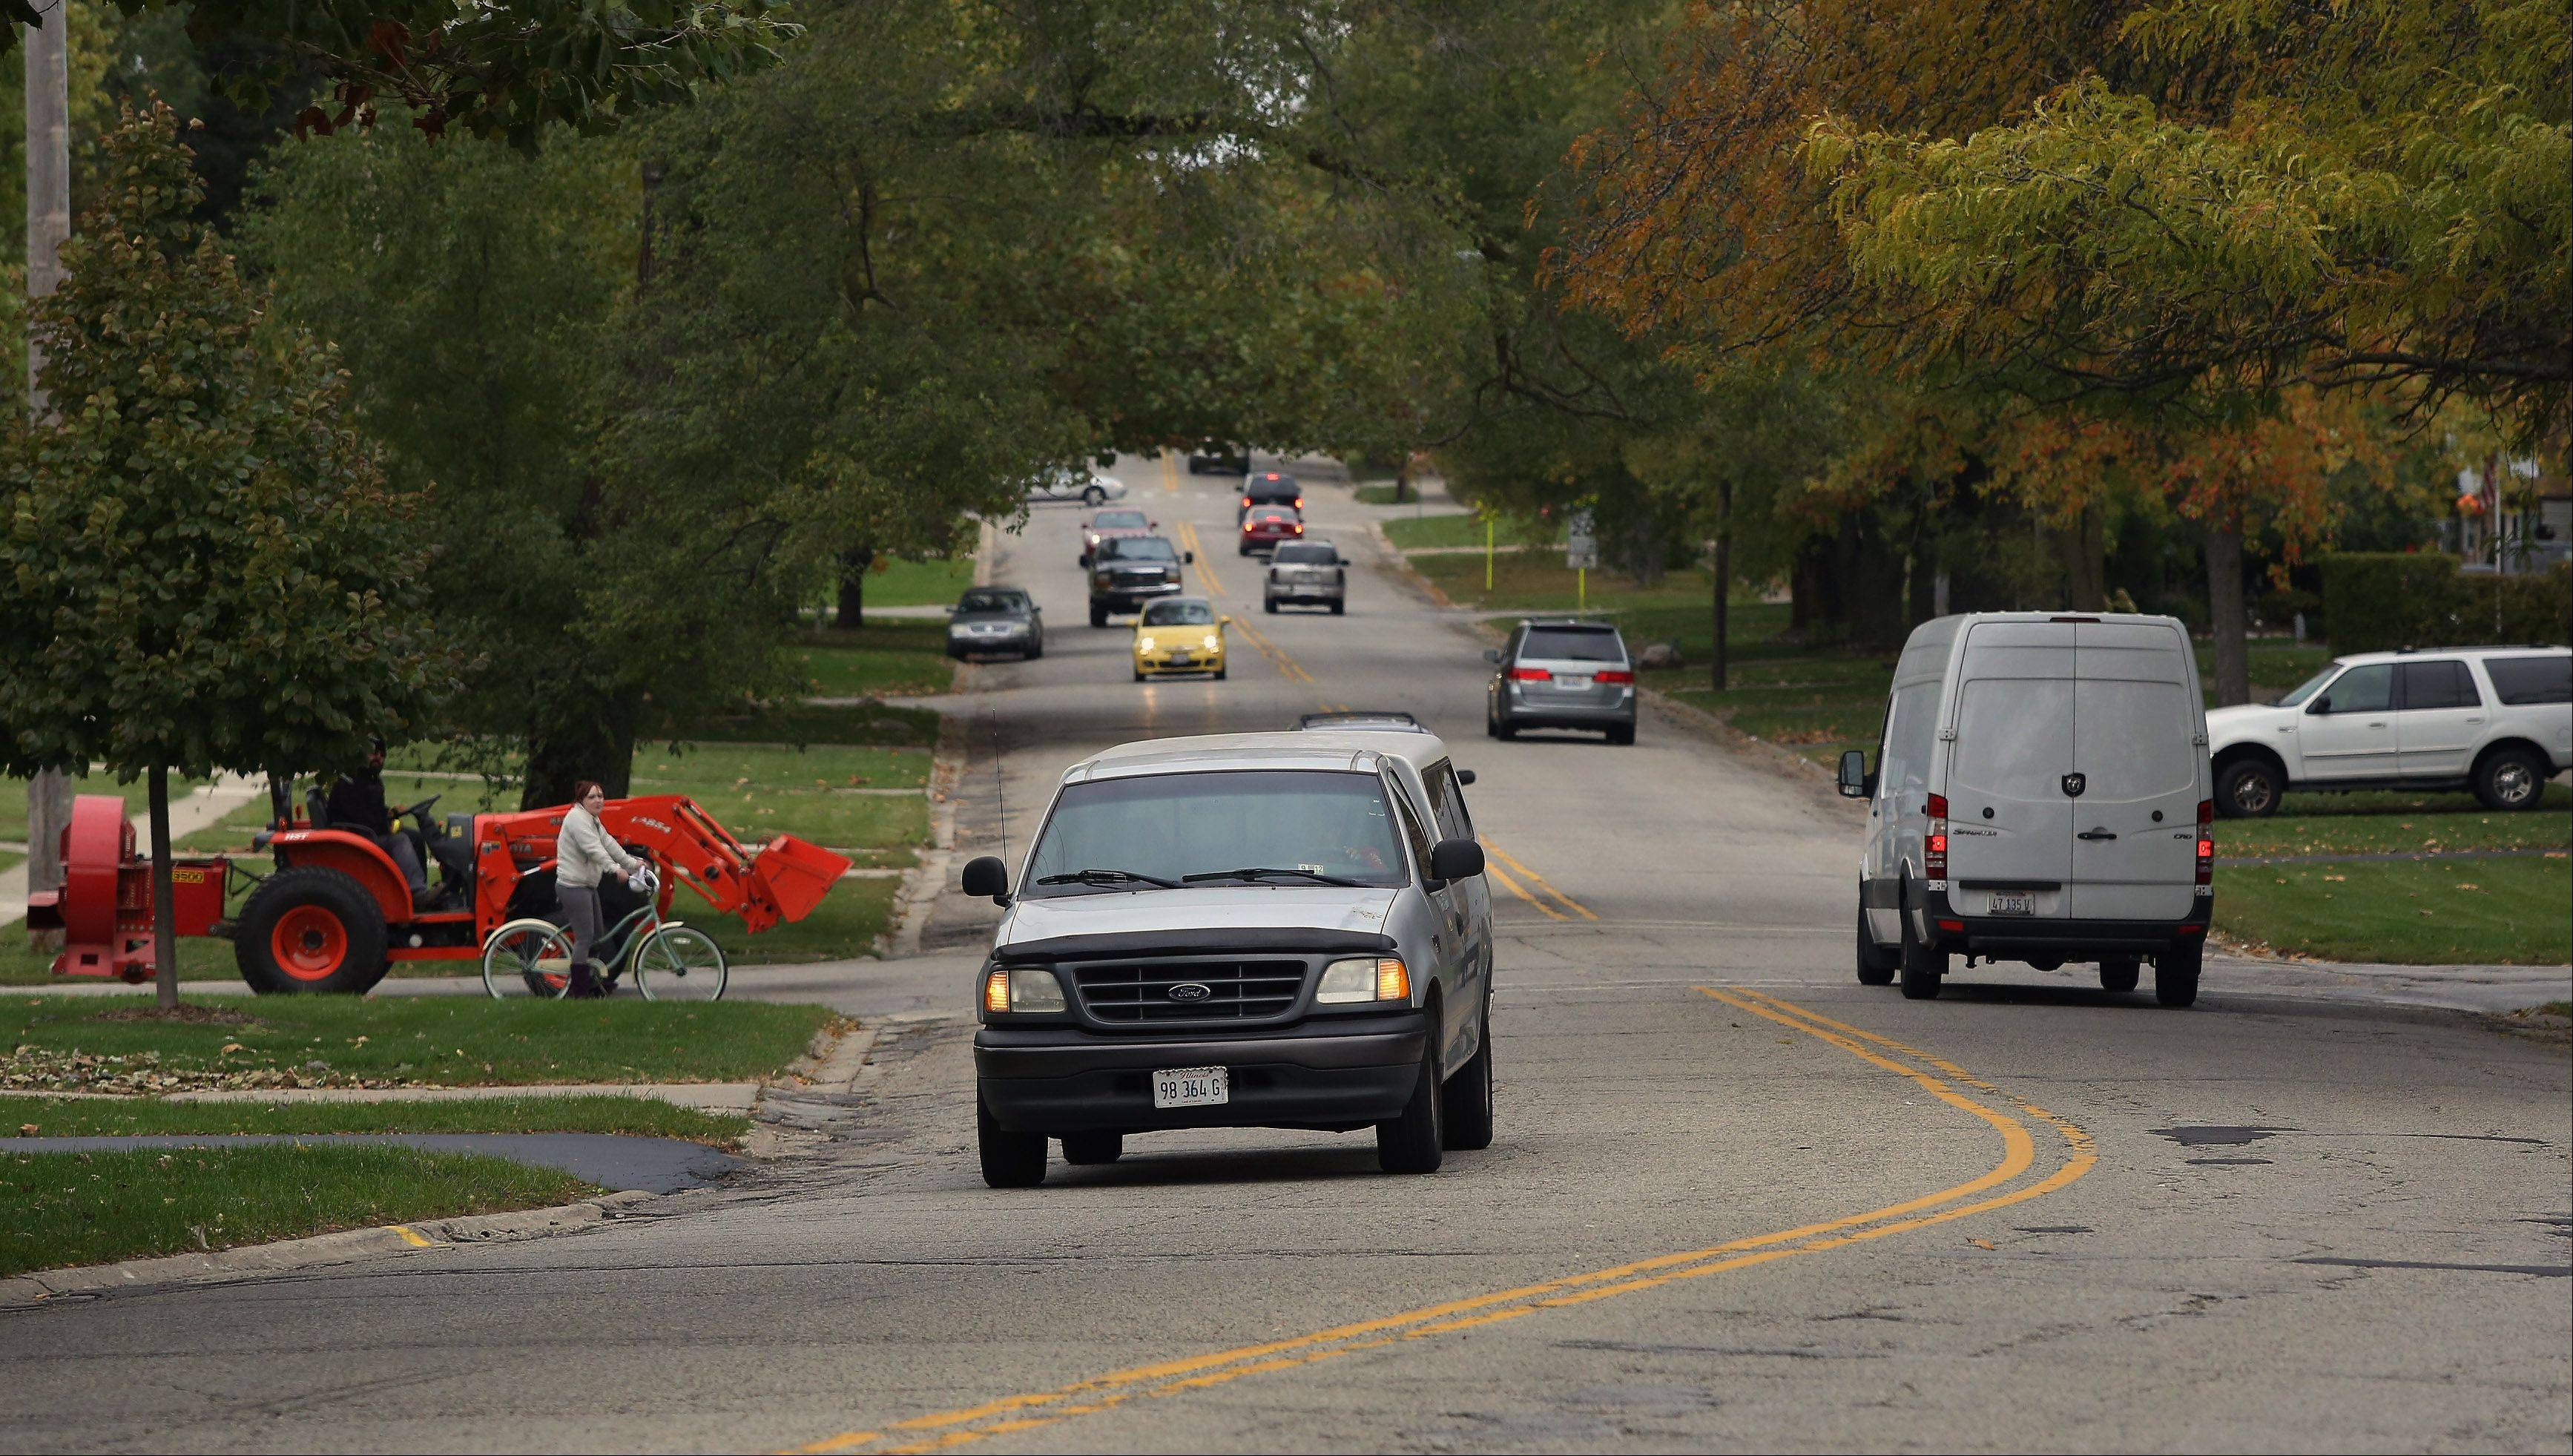 A stretch of Hawley Street in Mundelein is being eyed for widening and repairs. A public hearing is planned for Dec. 16.